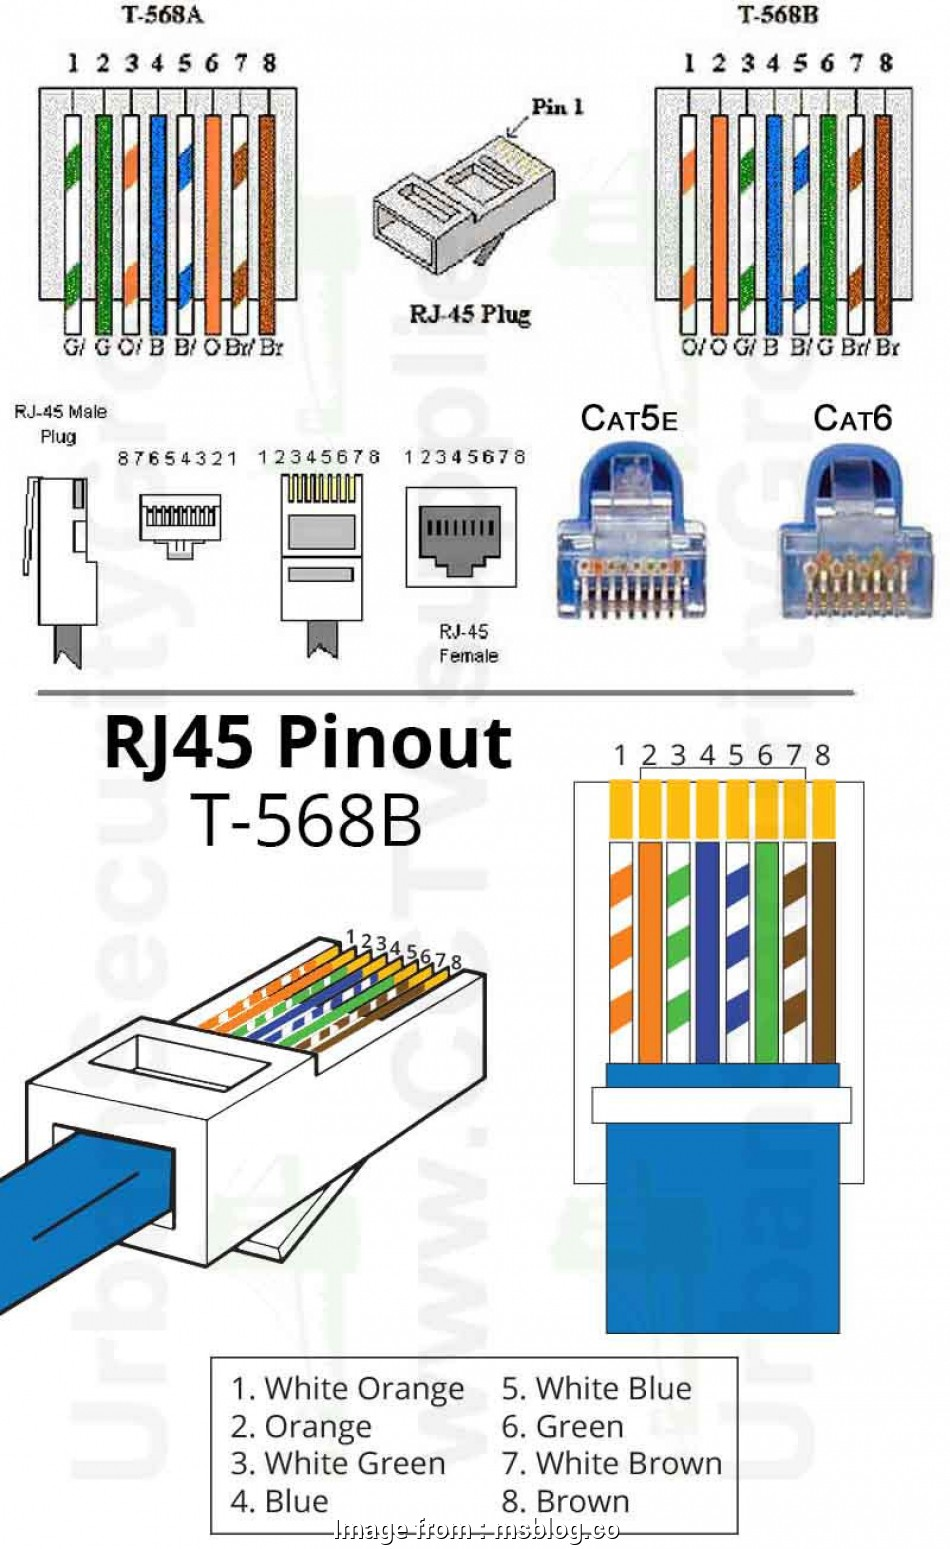 Cat 6 Termination Diagram Explanation - Wiring Diagram User Wiring Guide on